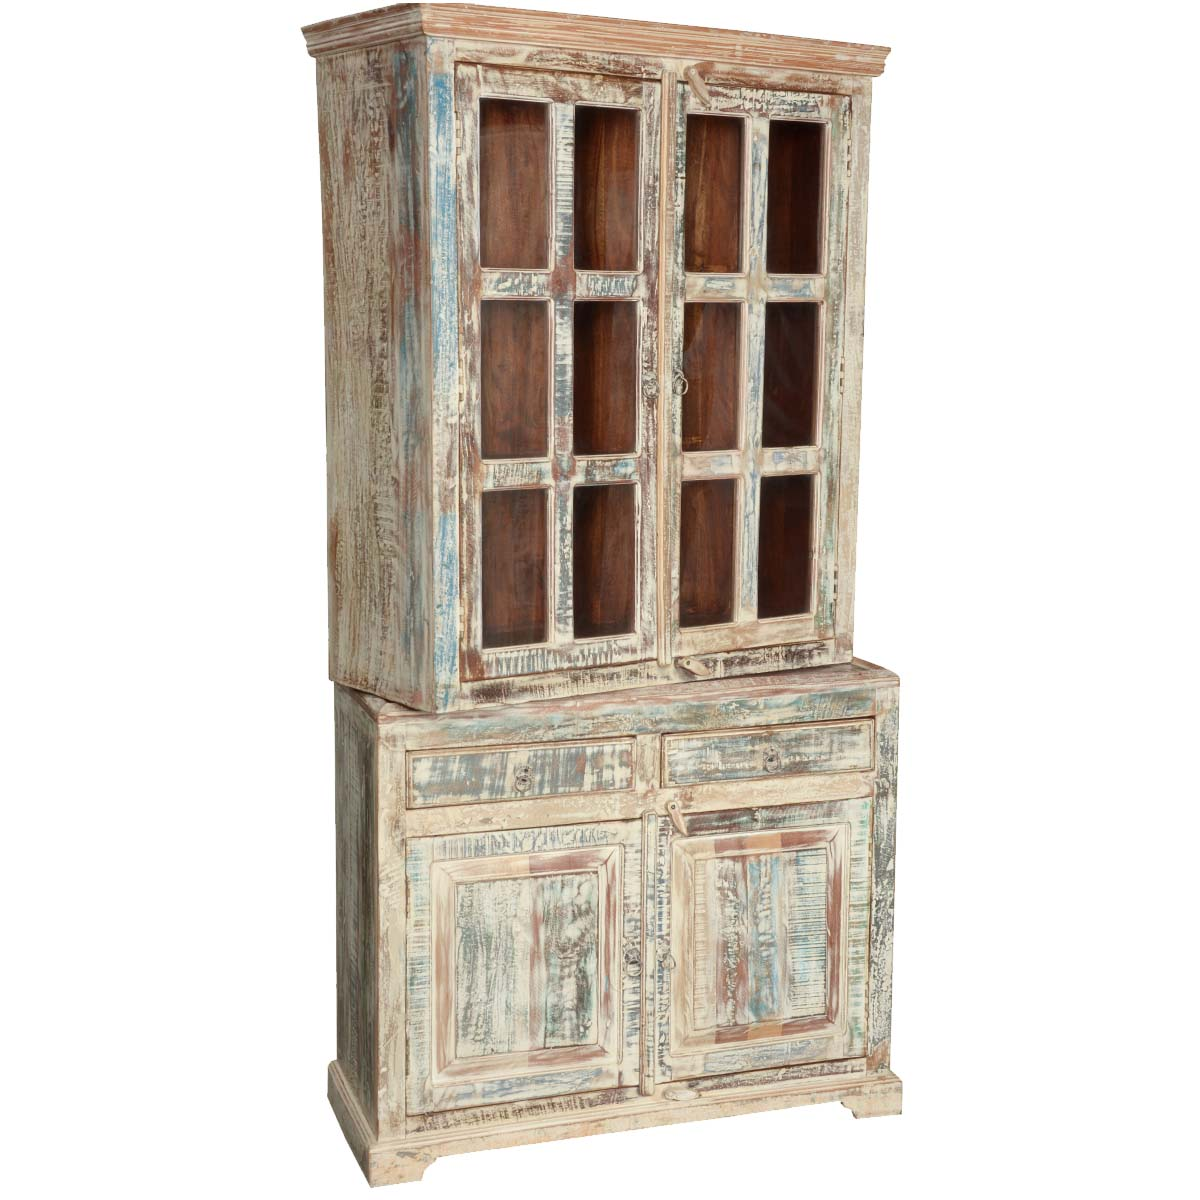 White Washed Reclaimed Wood Breakfront Hutch Buffet Cabinet : 72826 from www.sierralivingconcepts.com size 1200 x 1200 jpeg 153kB